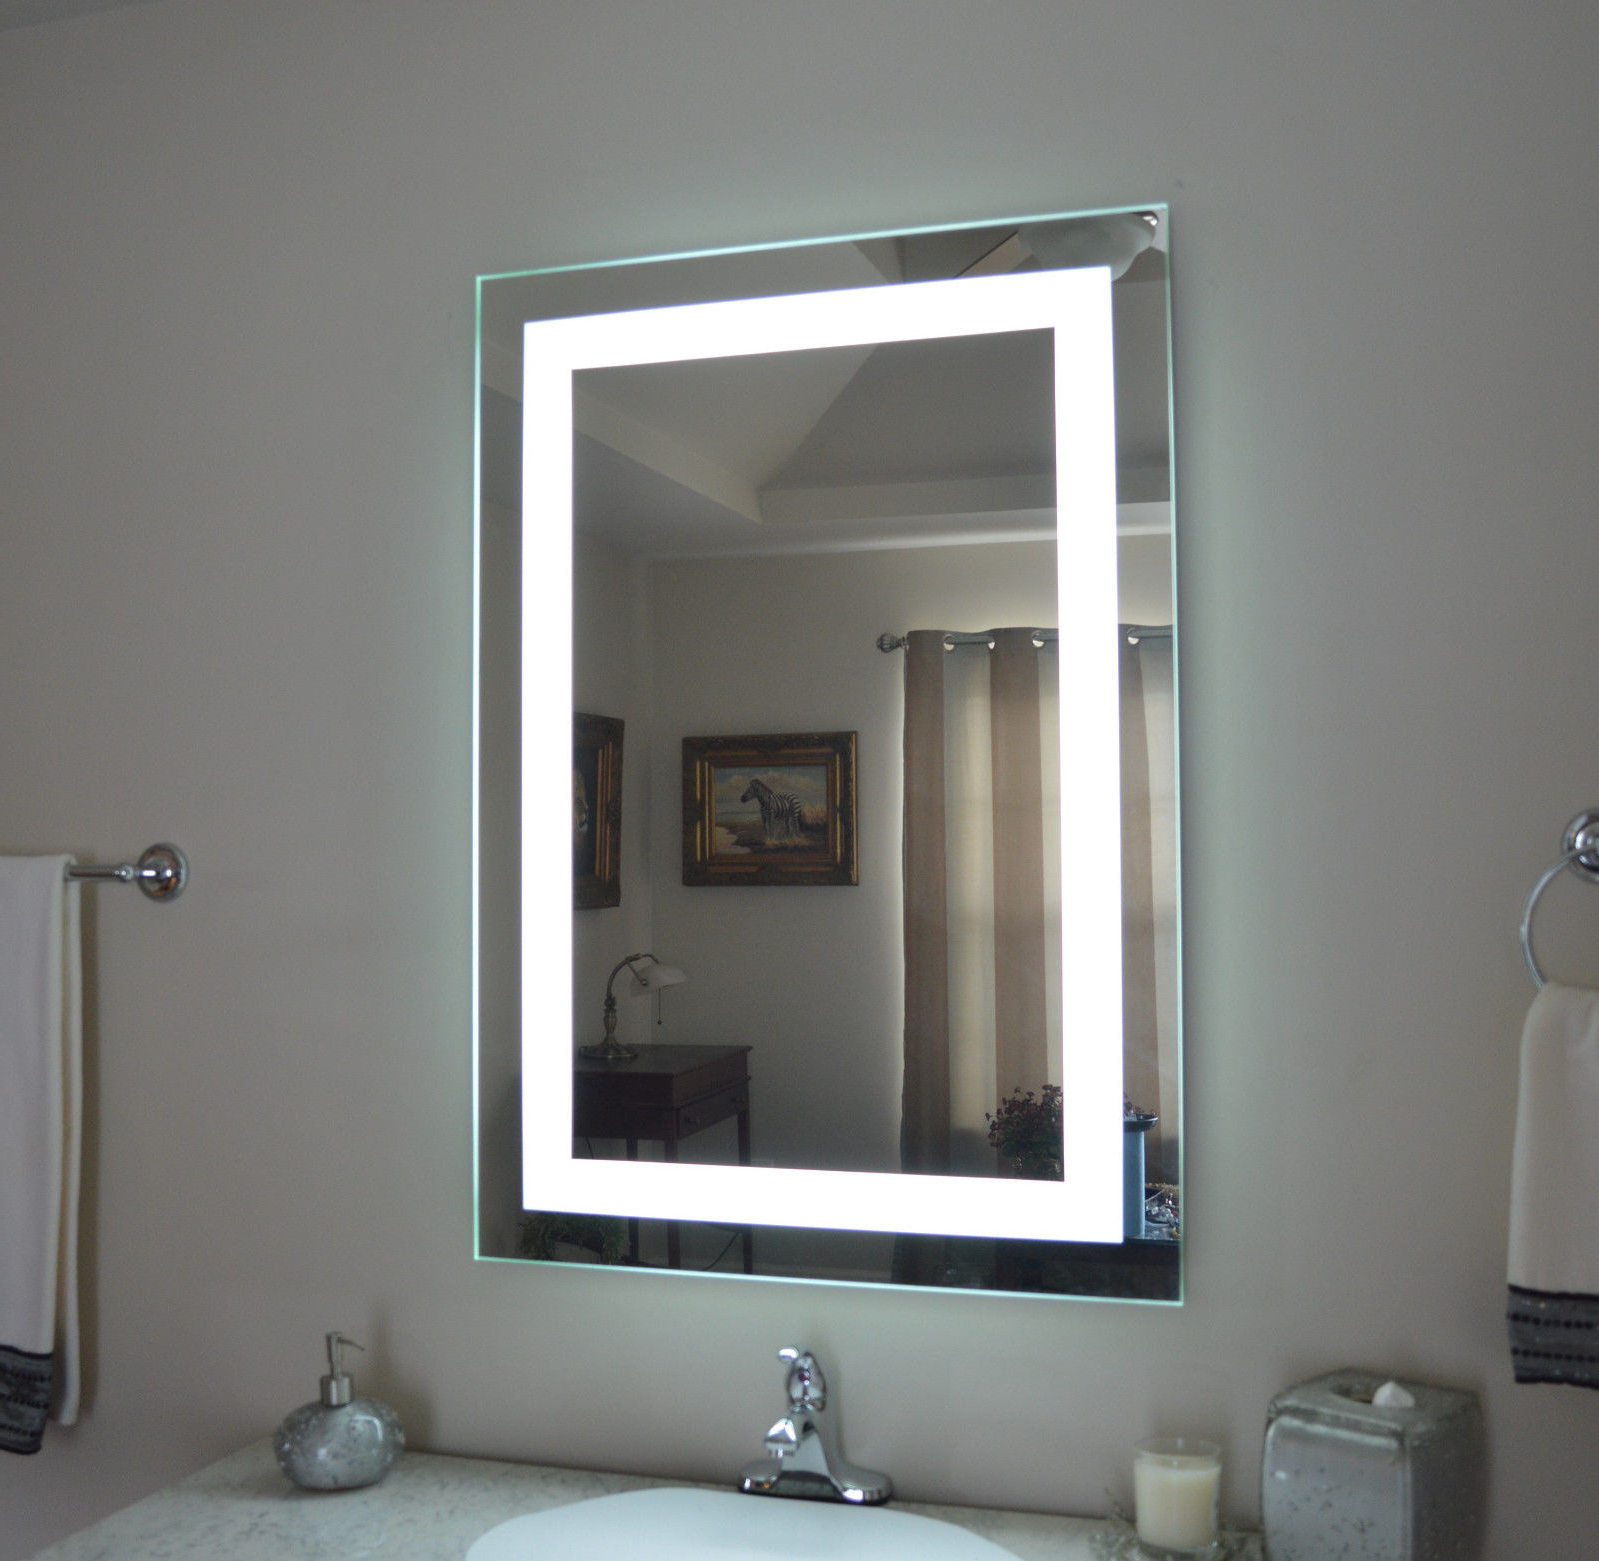 Led Bathroom Wall Mirror Illuminated Lighted Vanity Mirror With Touch  Button Ega In Famous Lighted Bathroom Wall Mirrors (Gallery 6 of 20)